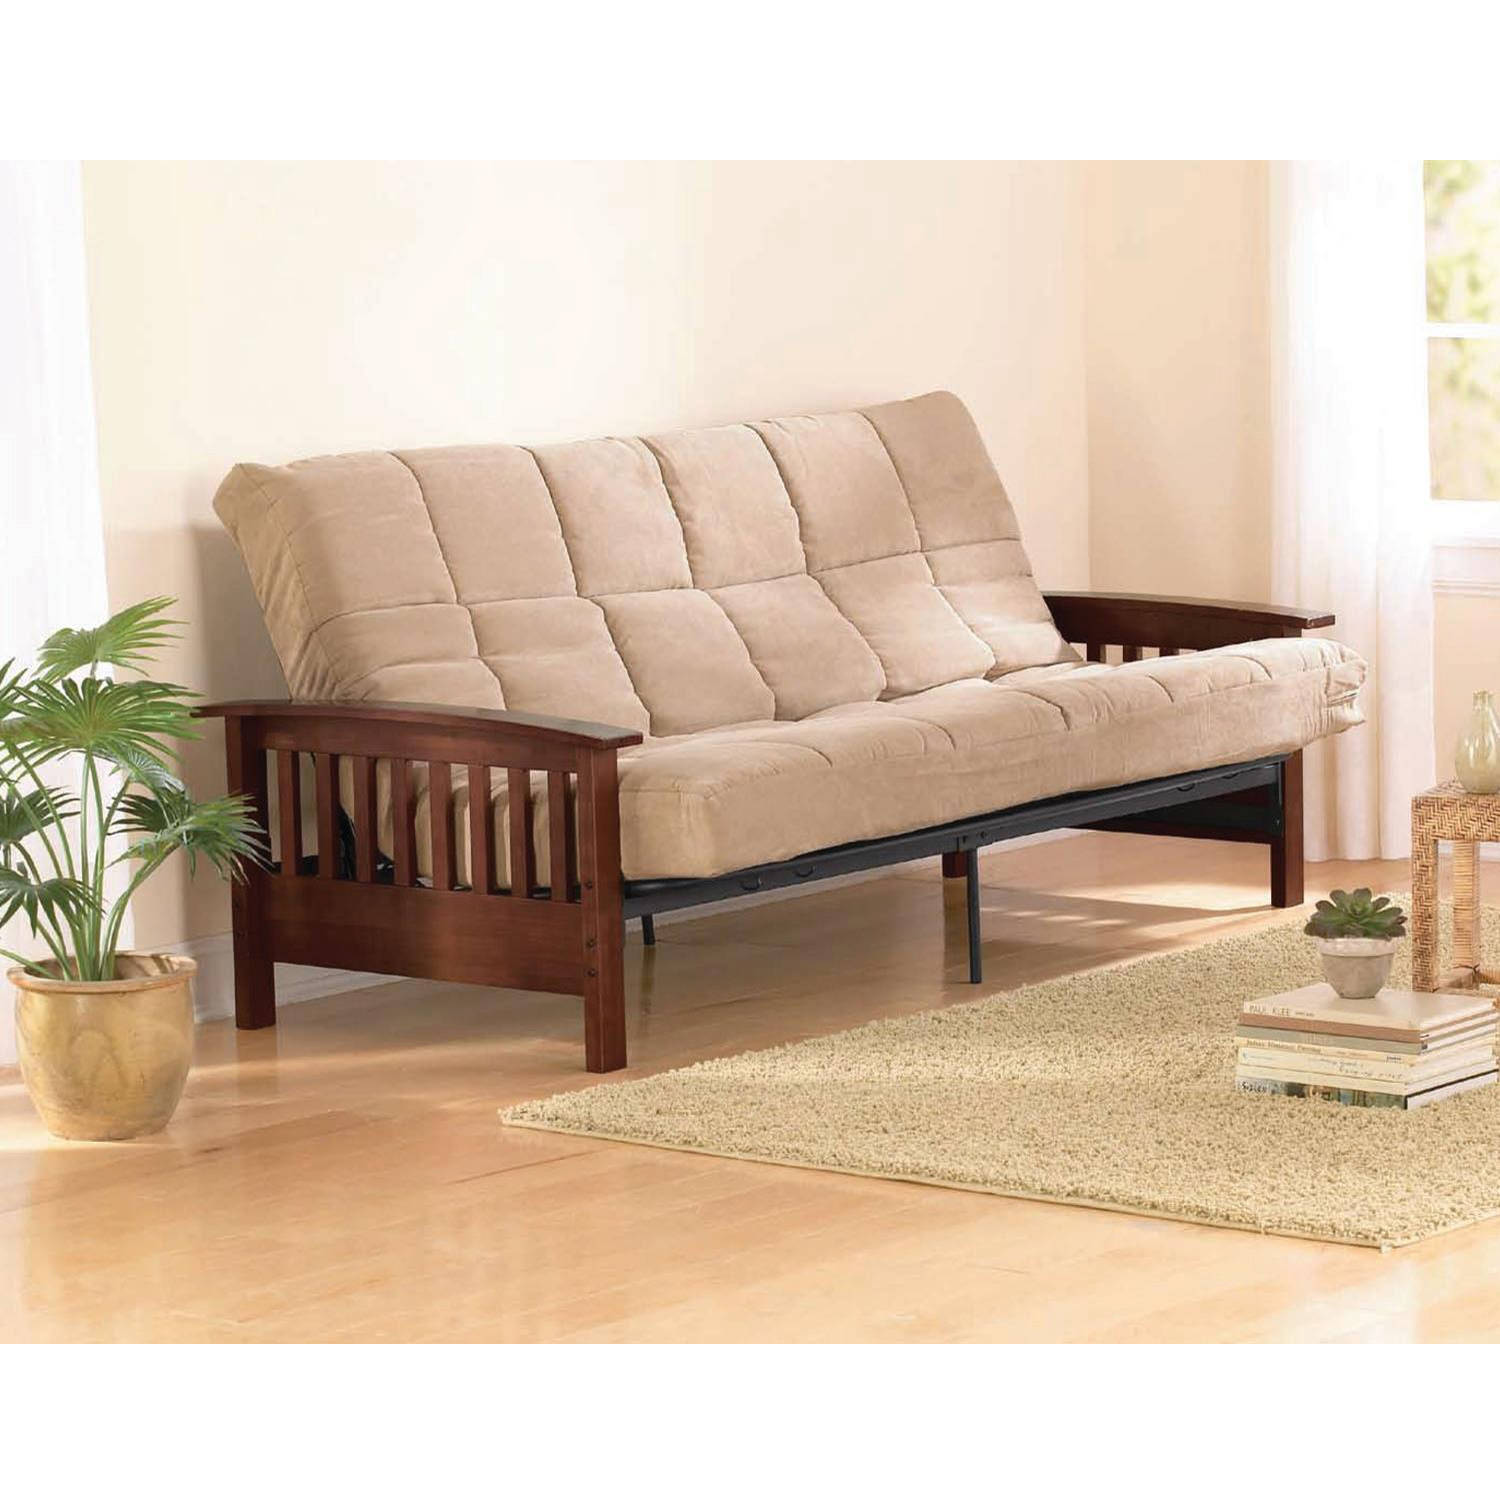 Details About Wood Futon Arms Frame Finish Sofa Bed With Mattress Full Size Sleeper Hardwood